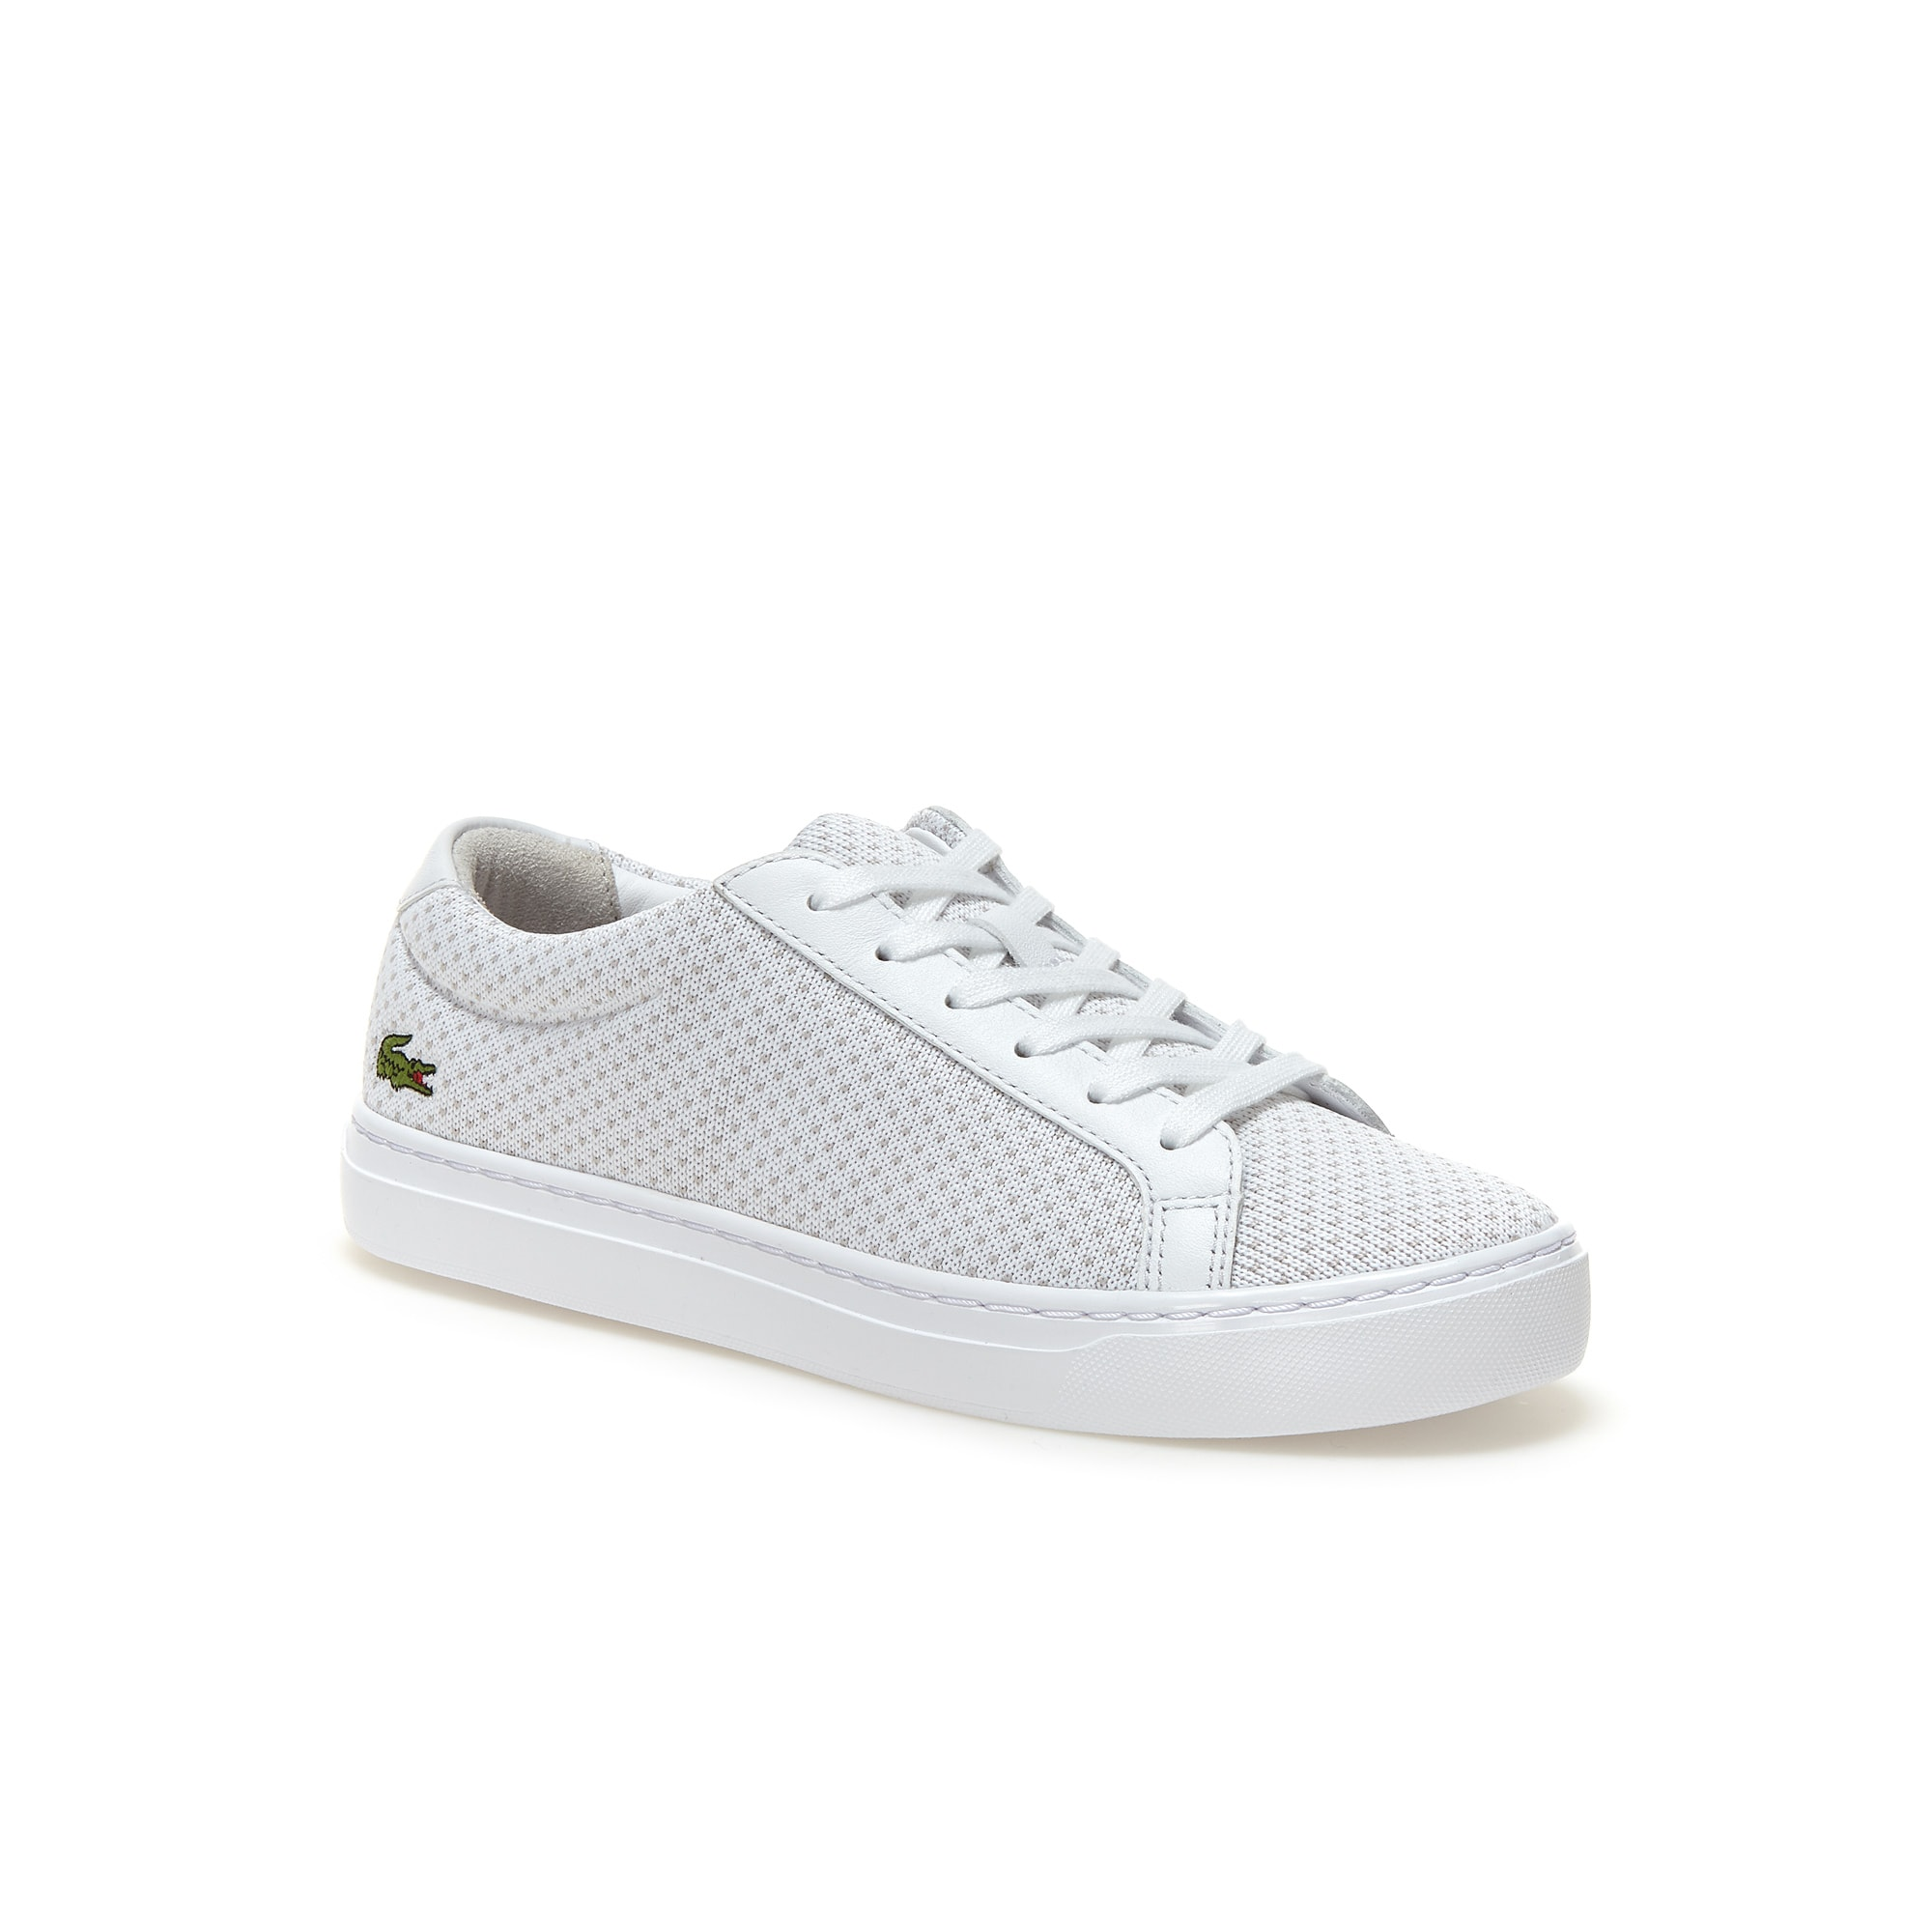 Women's L.12.12 Lightweight Textile Trainers